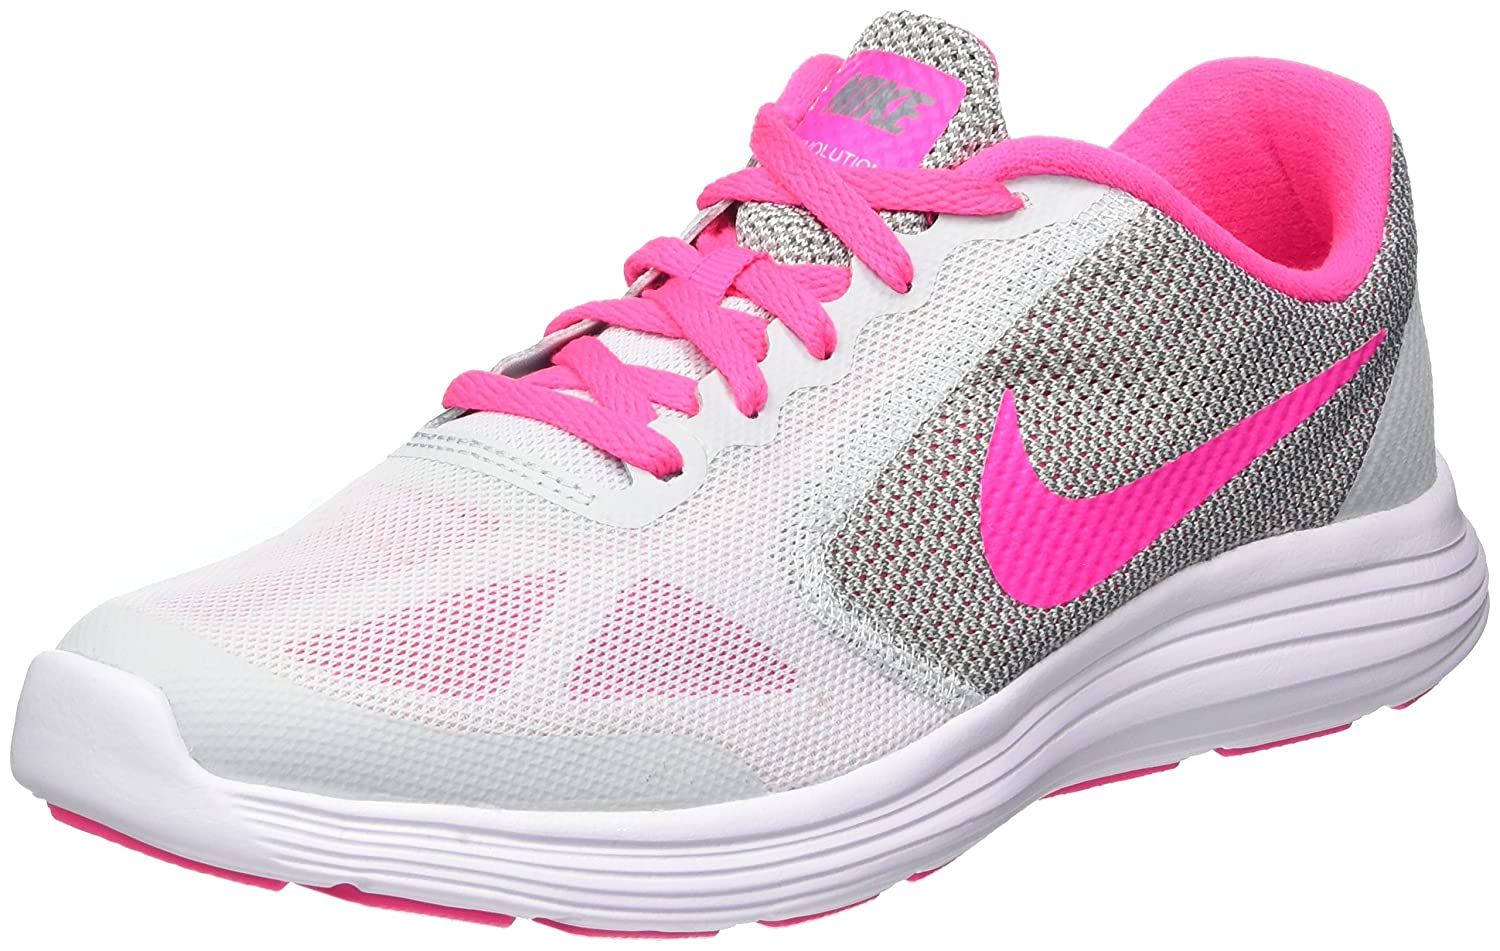 NIKE ' Revolution 3 (GS) Running Shoes B01IRVGNS6 5.5 M US Big Kid|Pure Platinum/Pink Blast/Wolf Grey/White